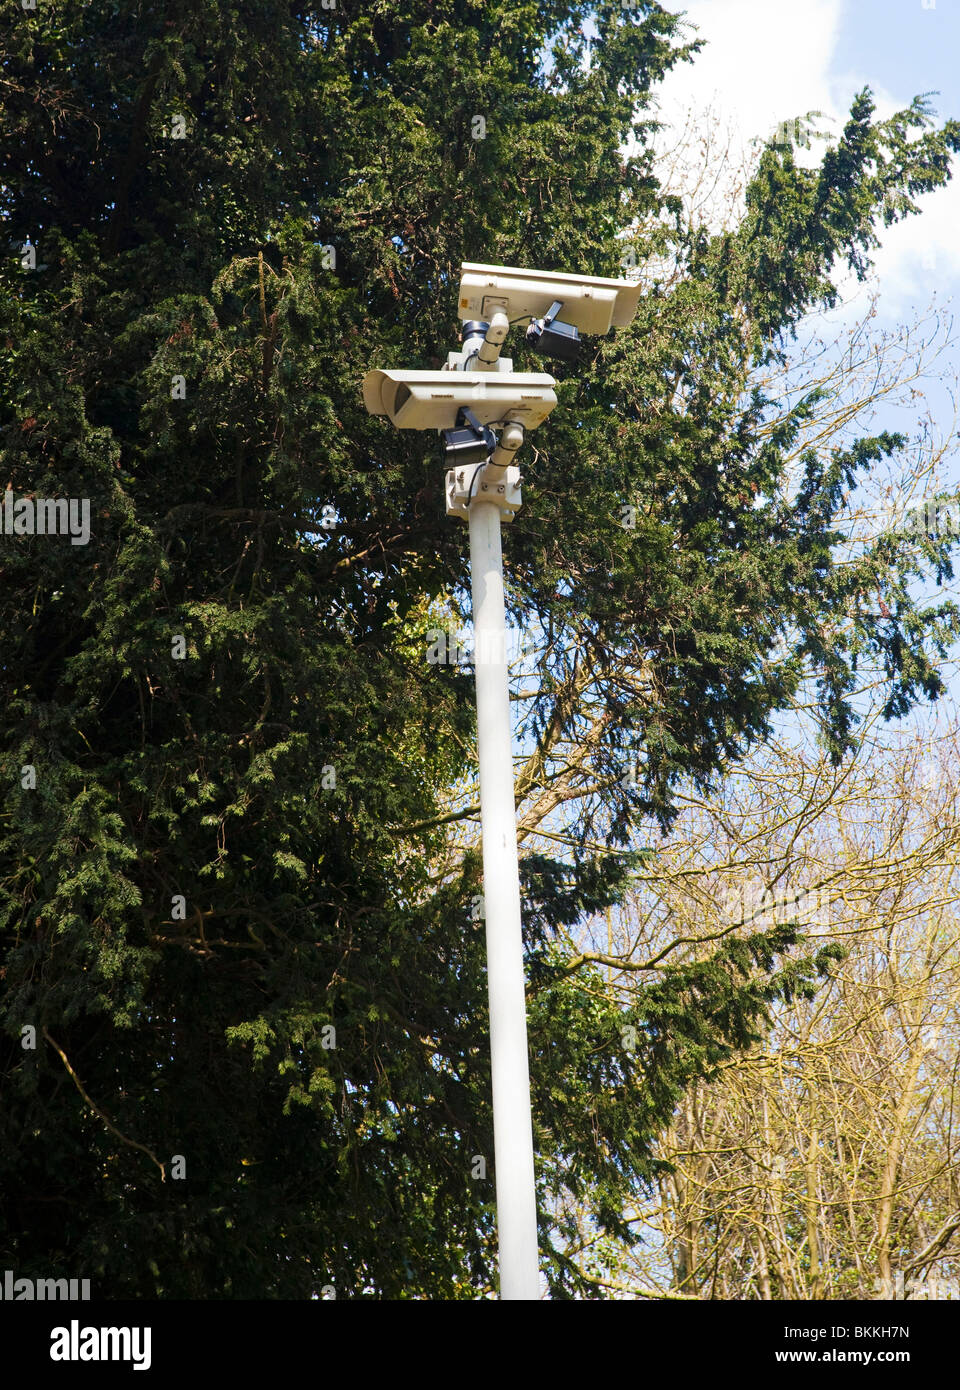 security CCTV cameras on a pole Stock Photo